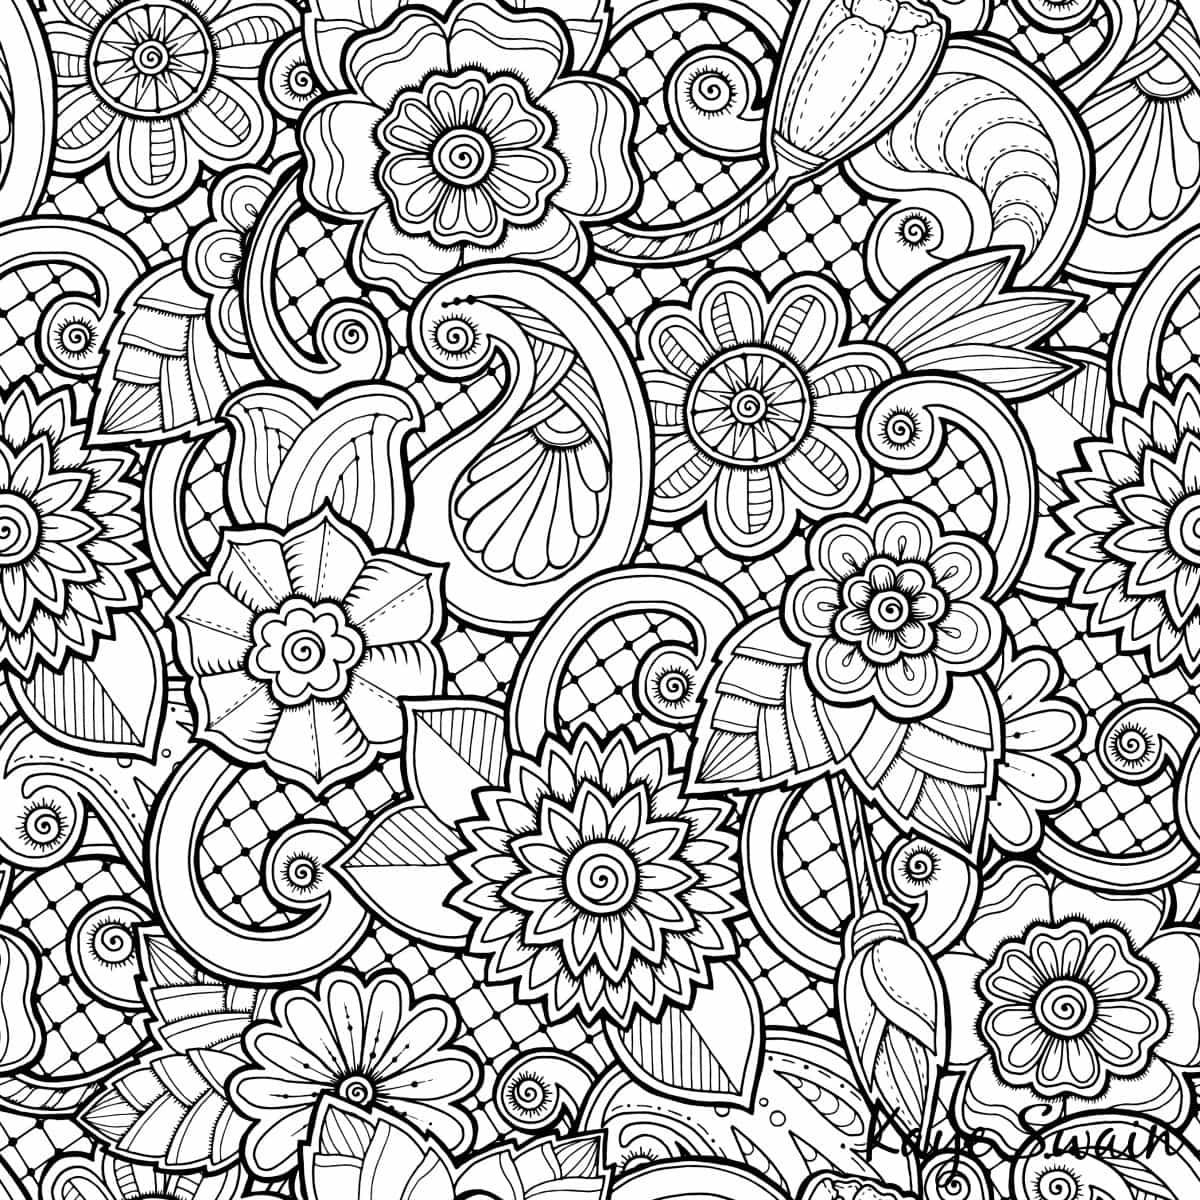 Coloring book real estate - Roseville Real Estate Agent Kaye Swain Sharing Spring Coloring Page Flowers Jpg